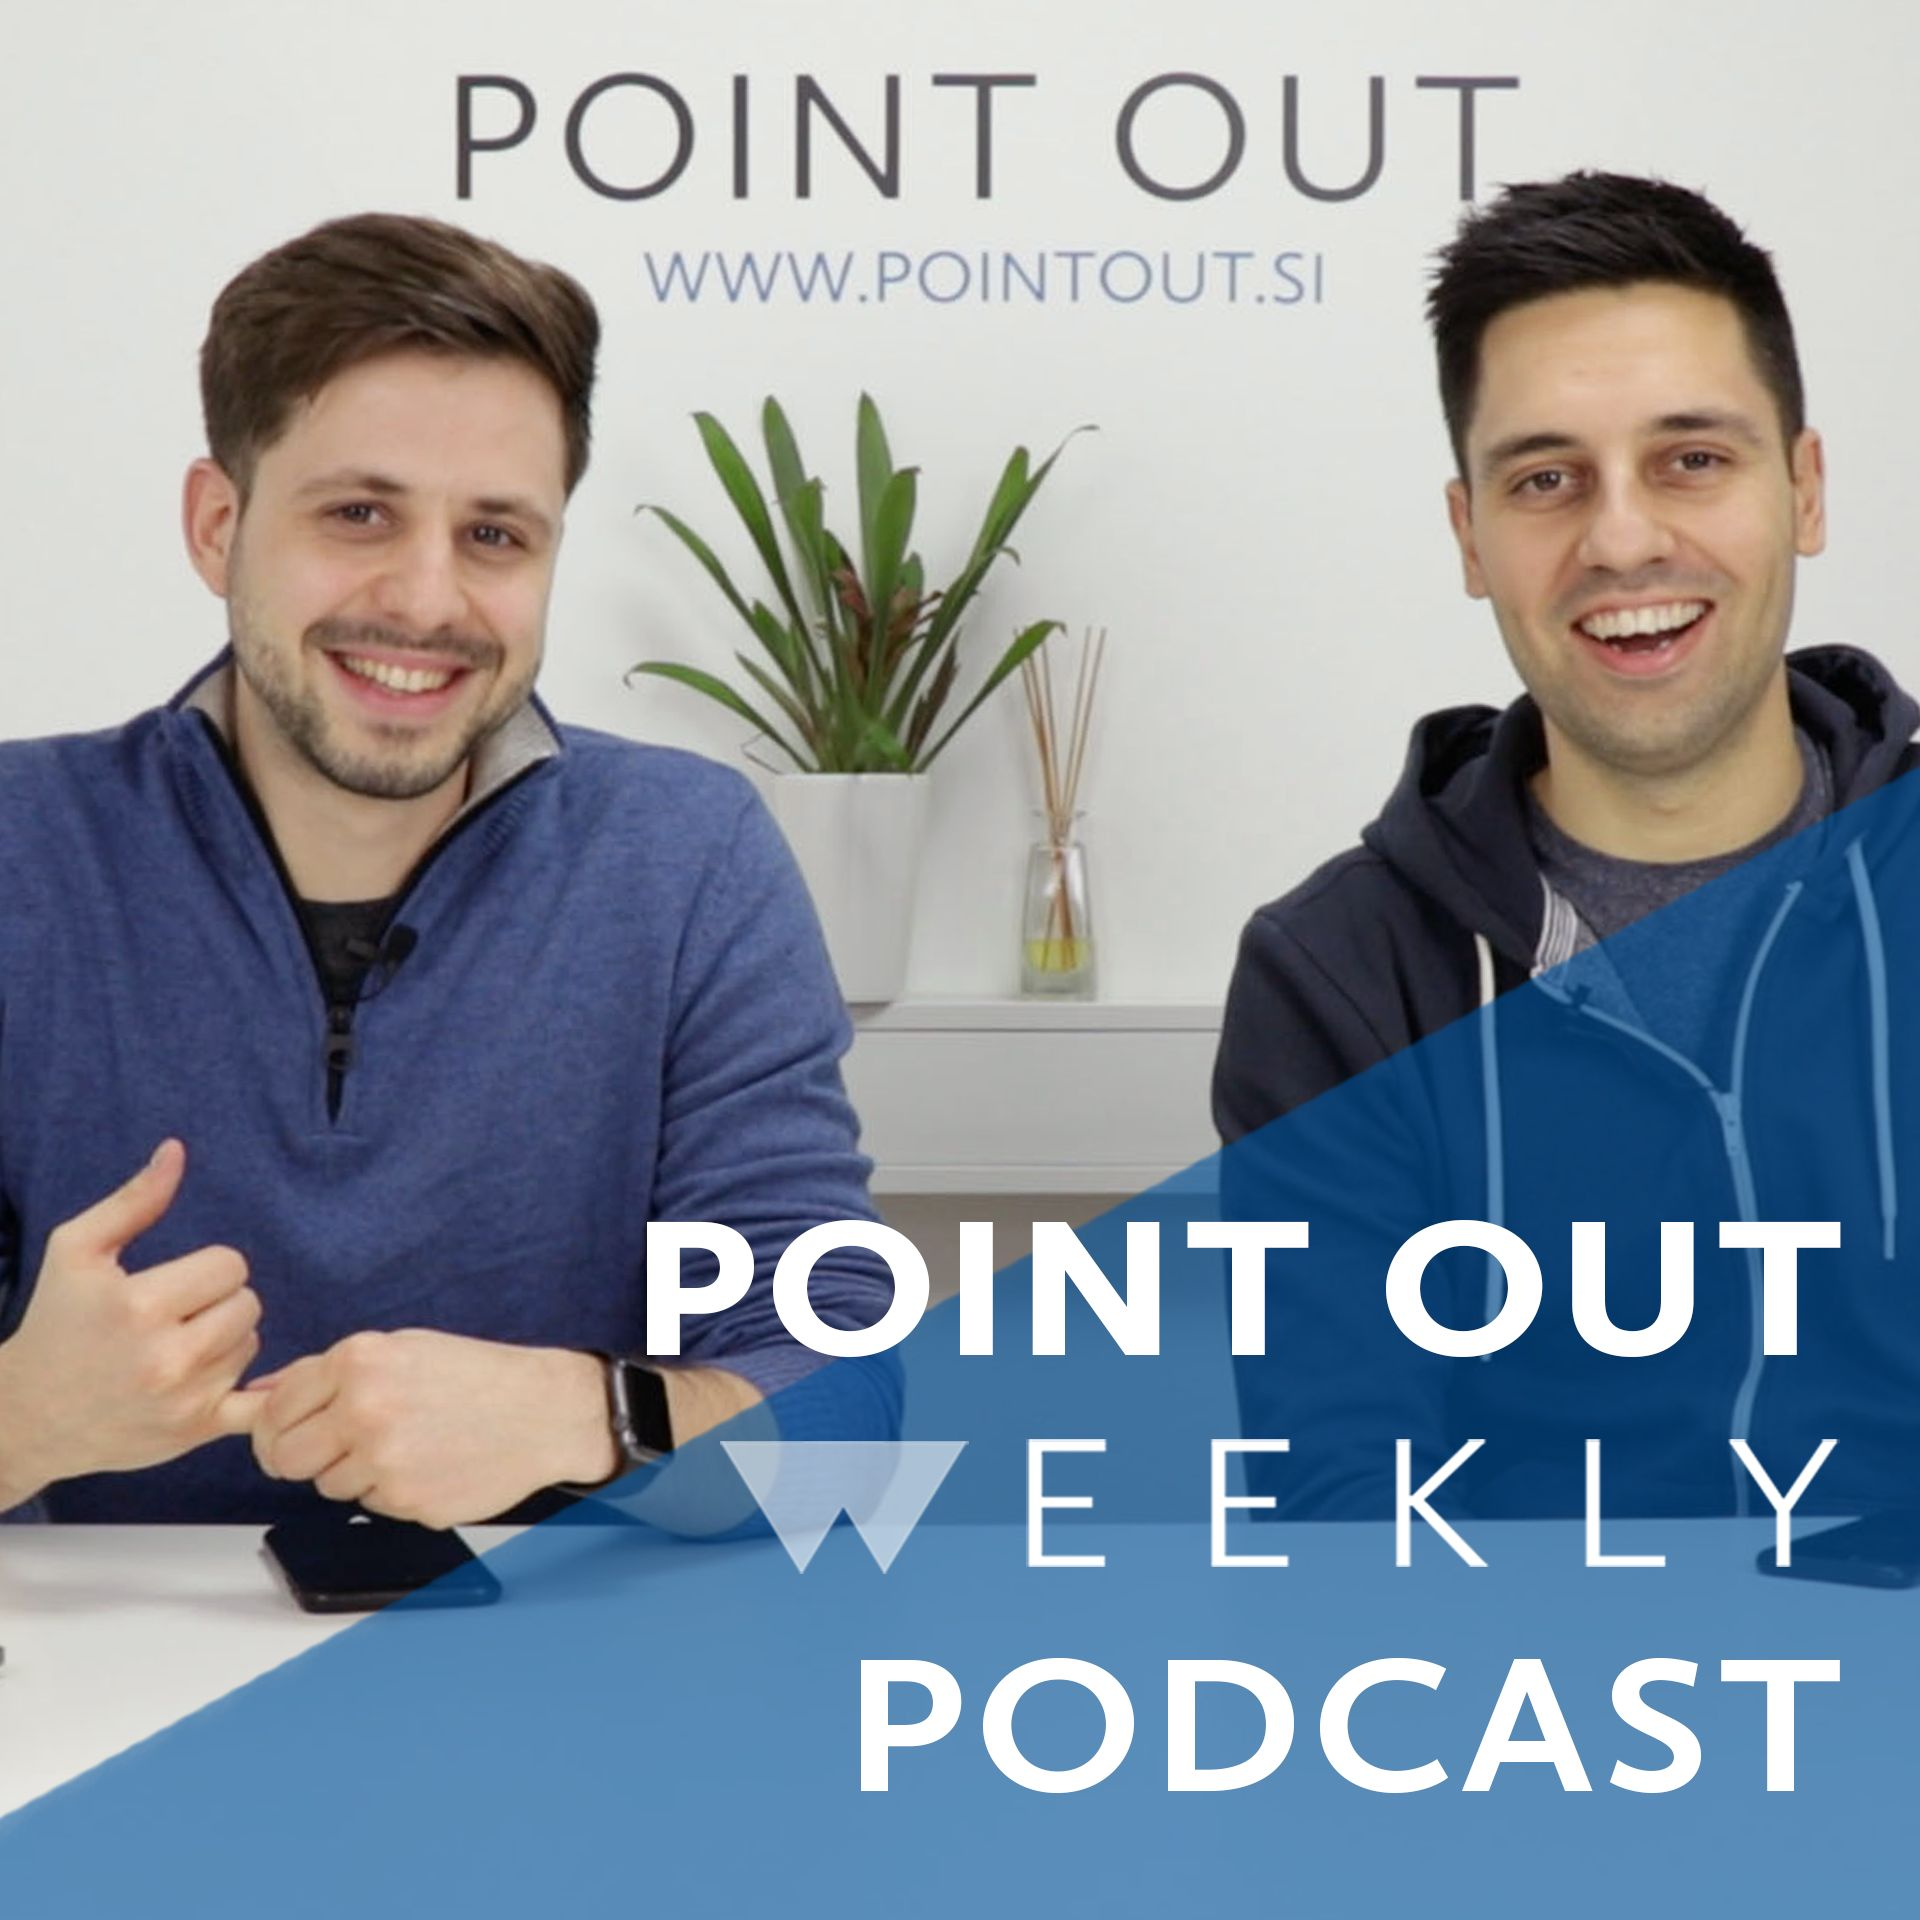 POINT OUT Weekly